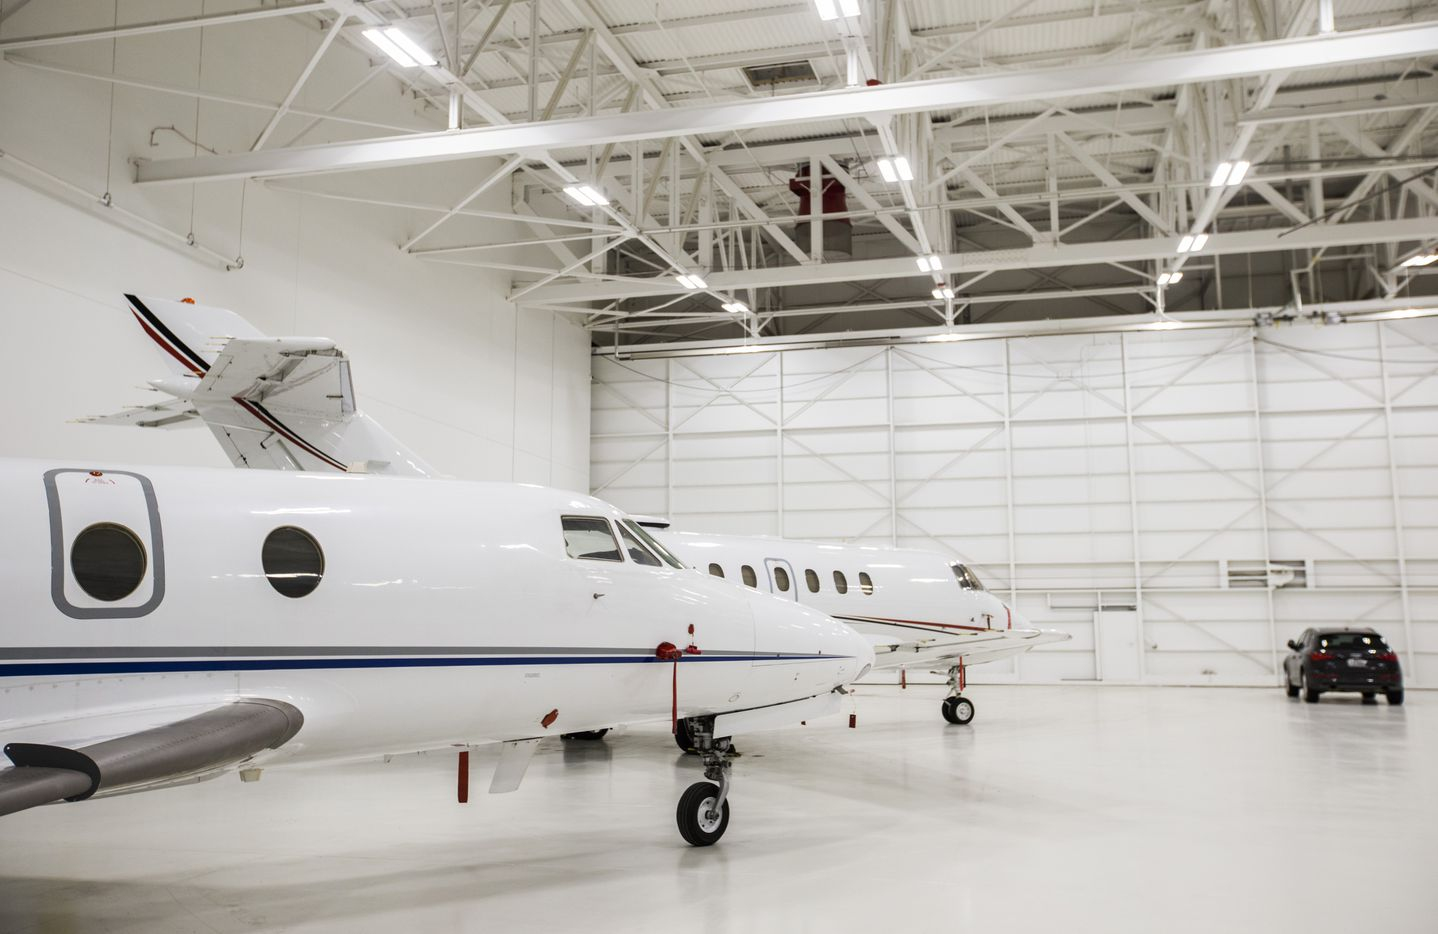 One of the private aircraft hangers at Braniff Center on Lemmon Avenue in Dallas.